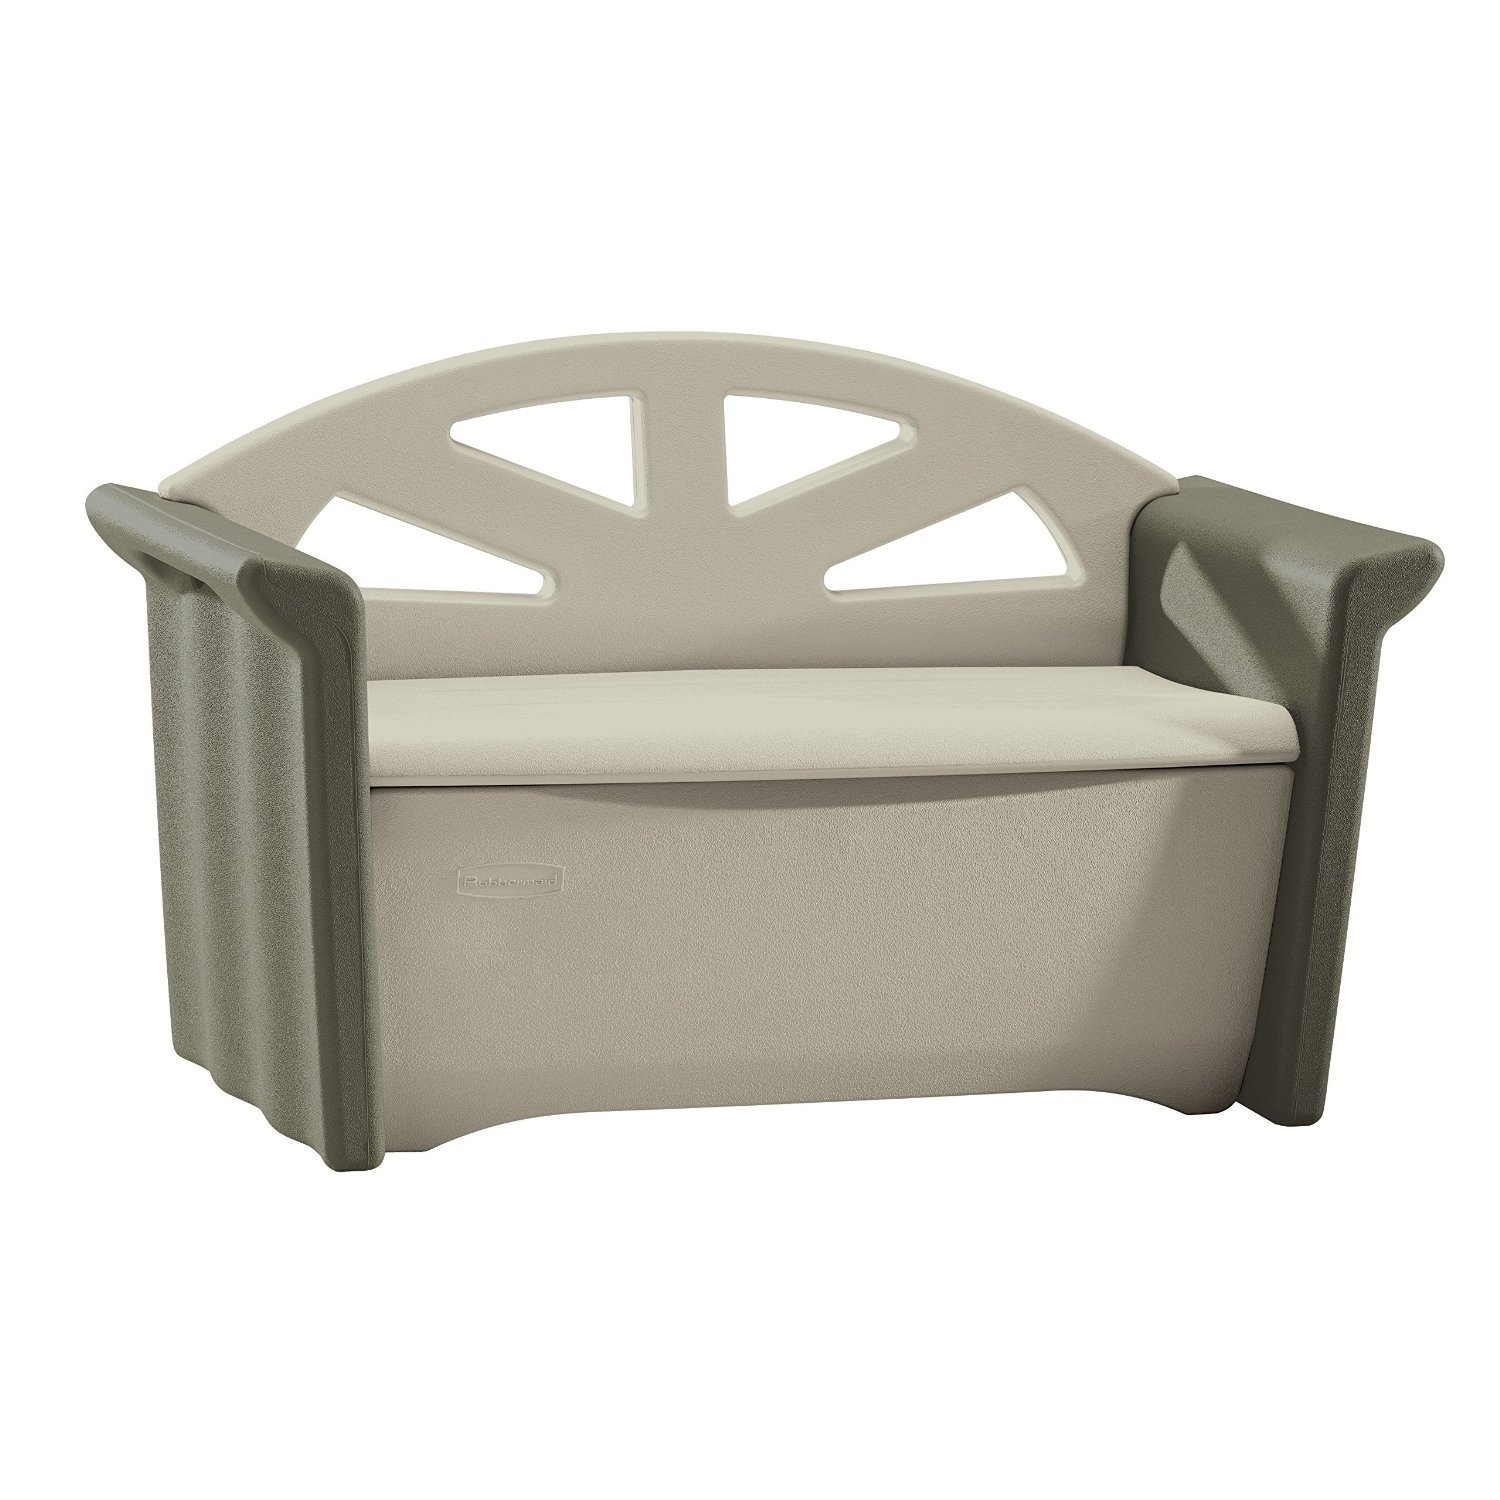 Amazon benches patio seating patio lawn garden rubbermaid parisarafo Image collections